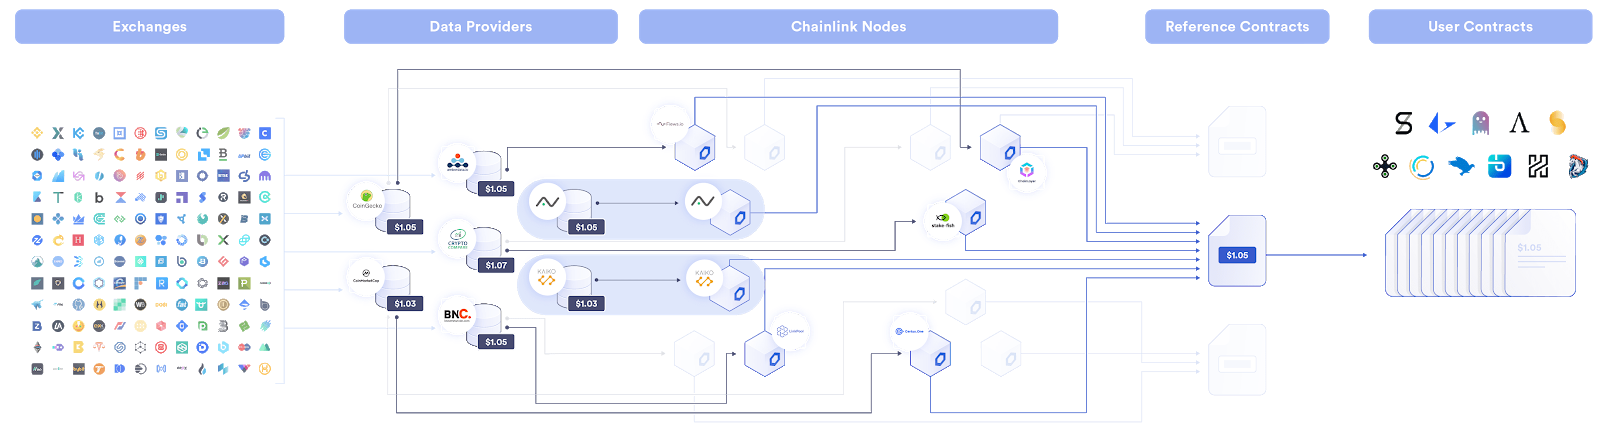 Layers of data aggregation in the Chainlink Network